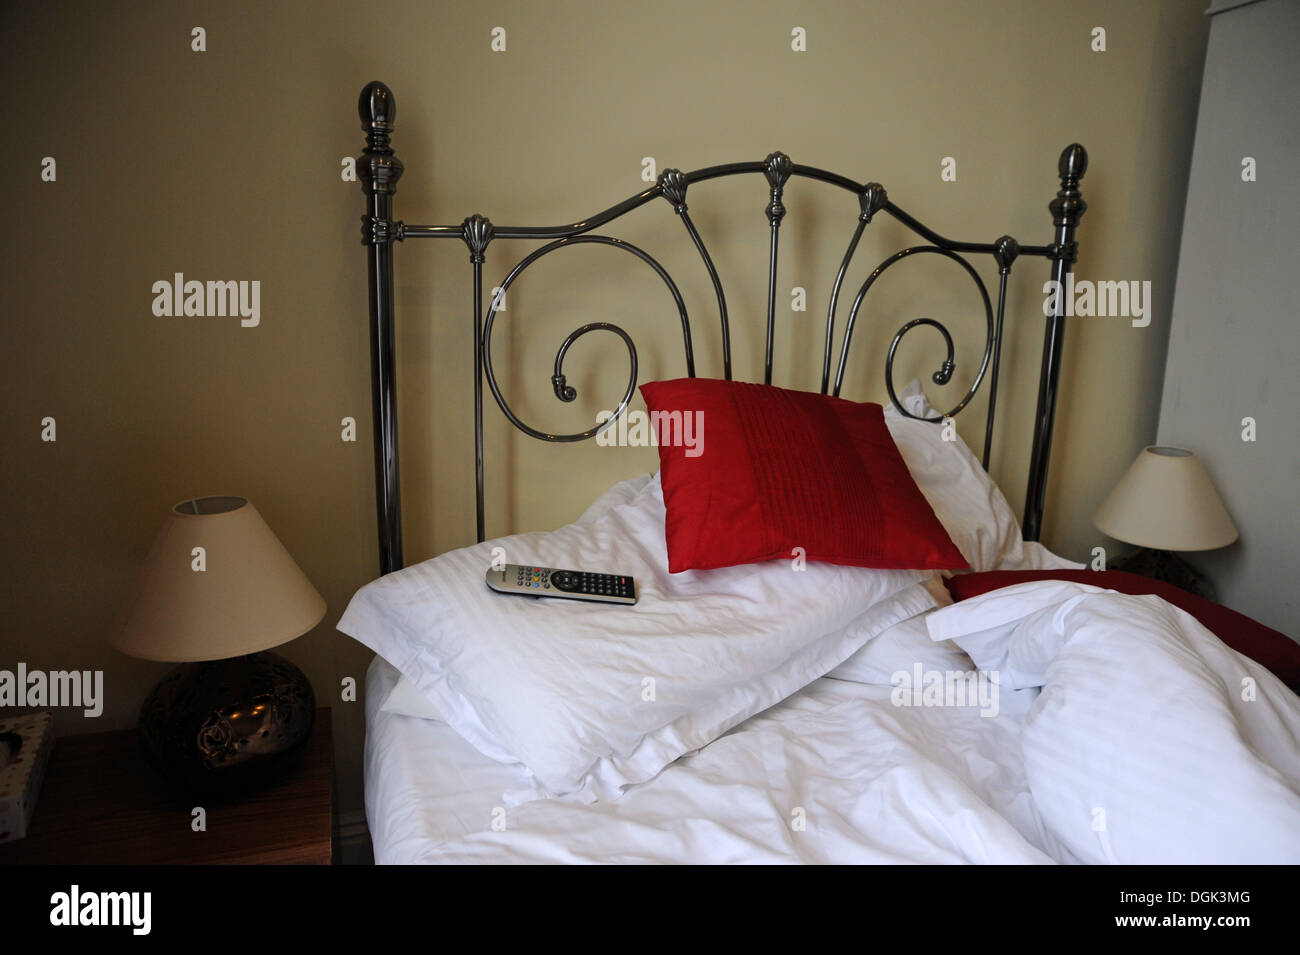 unmade bed with tv remote control on pillows stock photo, royalty